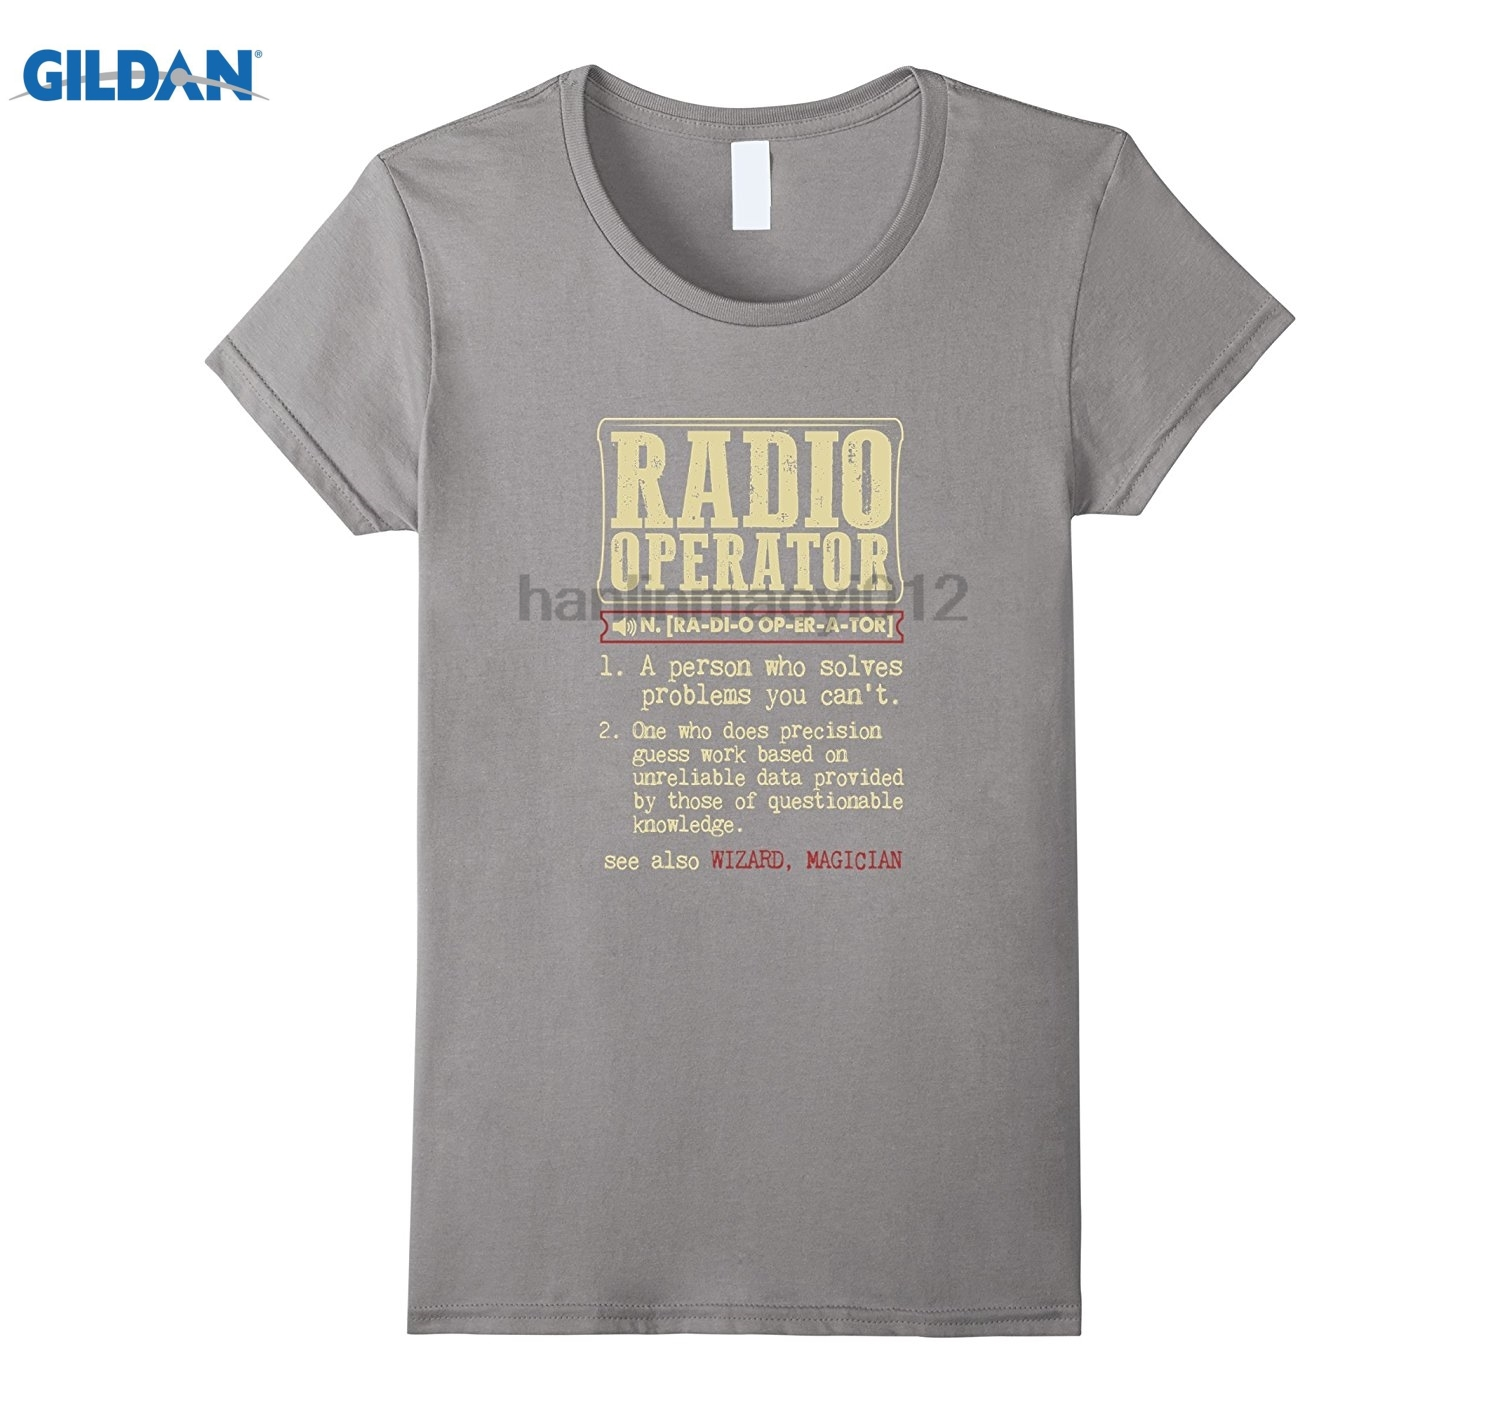 GILDAN Radio Operator Dictionary Term T-Shirt Hot Womens T-shirt